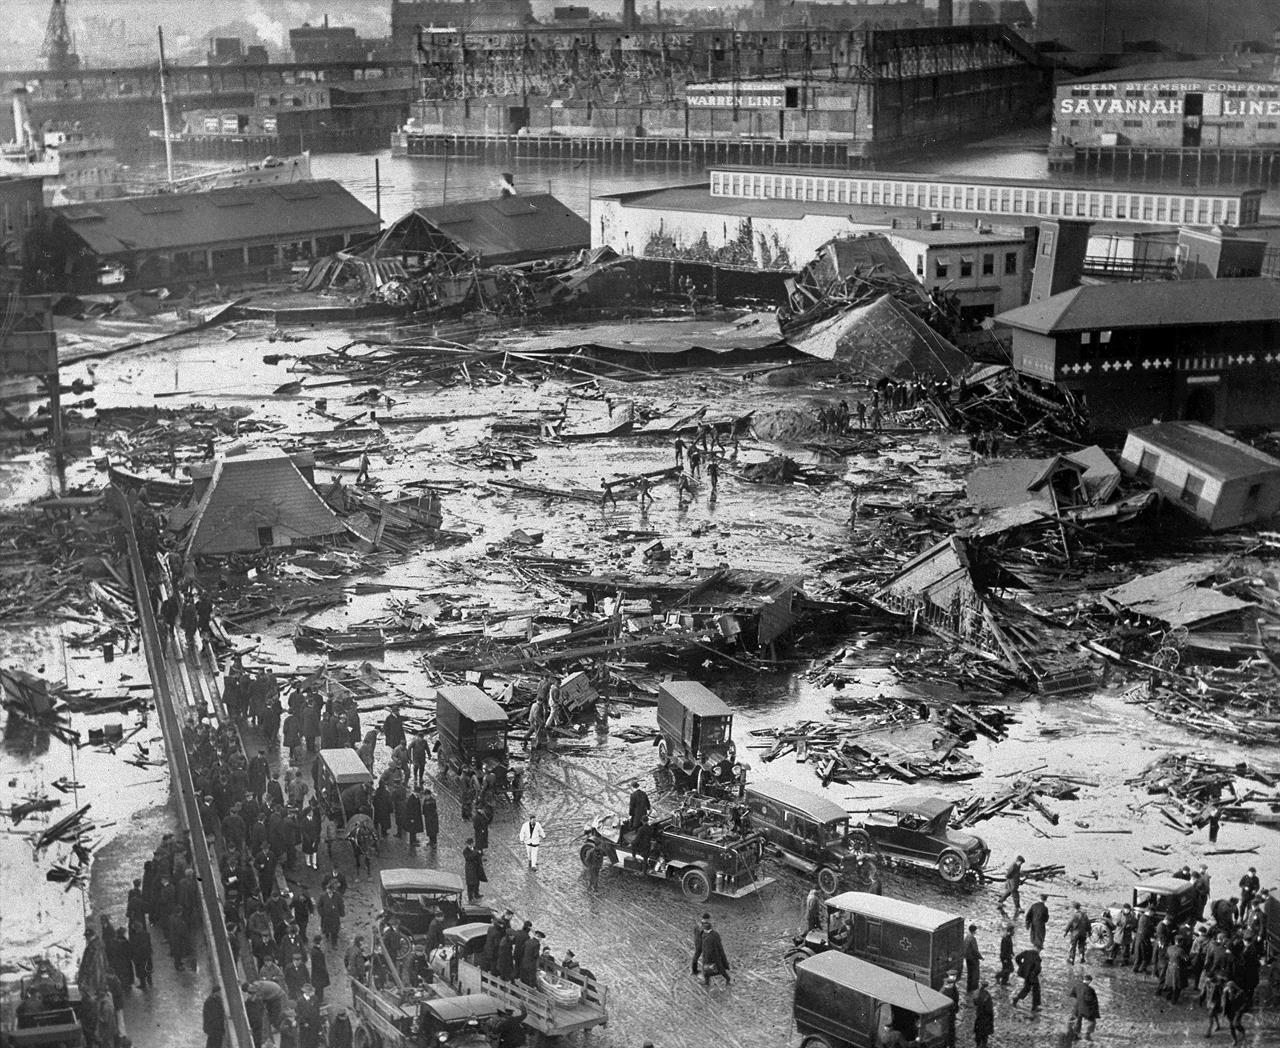 685d5a6cd 15, 1919, file photo, the ruins of tanks containing more than 2 million  gallons of molasses lie in a heap after erupting along the waterfront in  Boston's ...